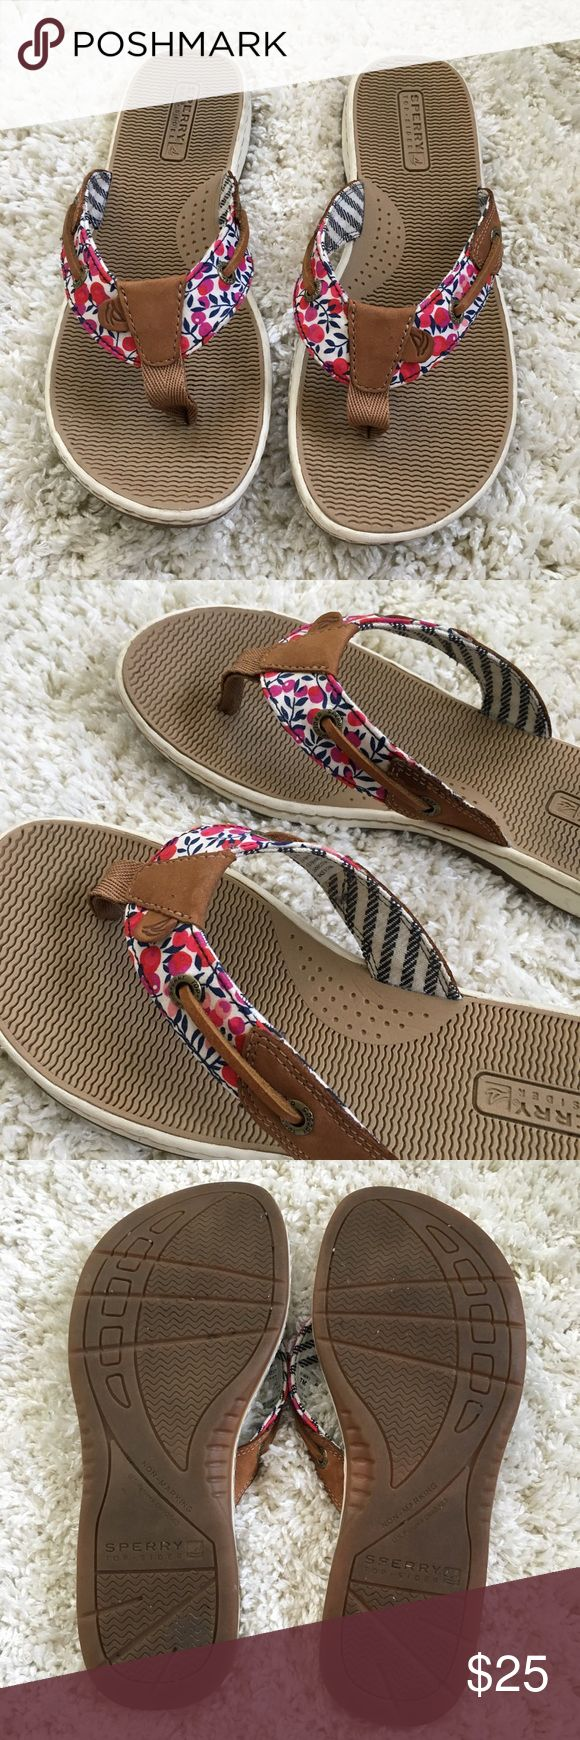 Sperry Sandals Excellent condition Sperry sandals, only worn once. Has cherry design on the straps. Size: 7 Sperry Shoes Sandals